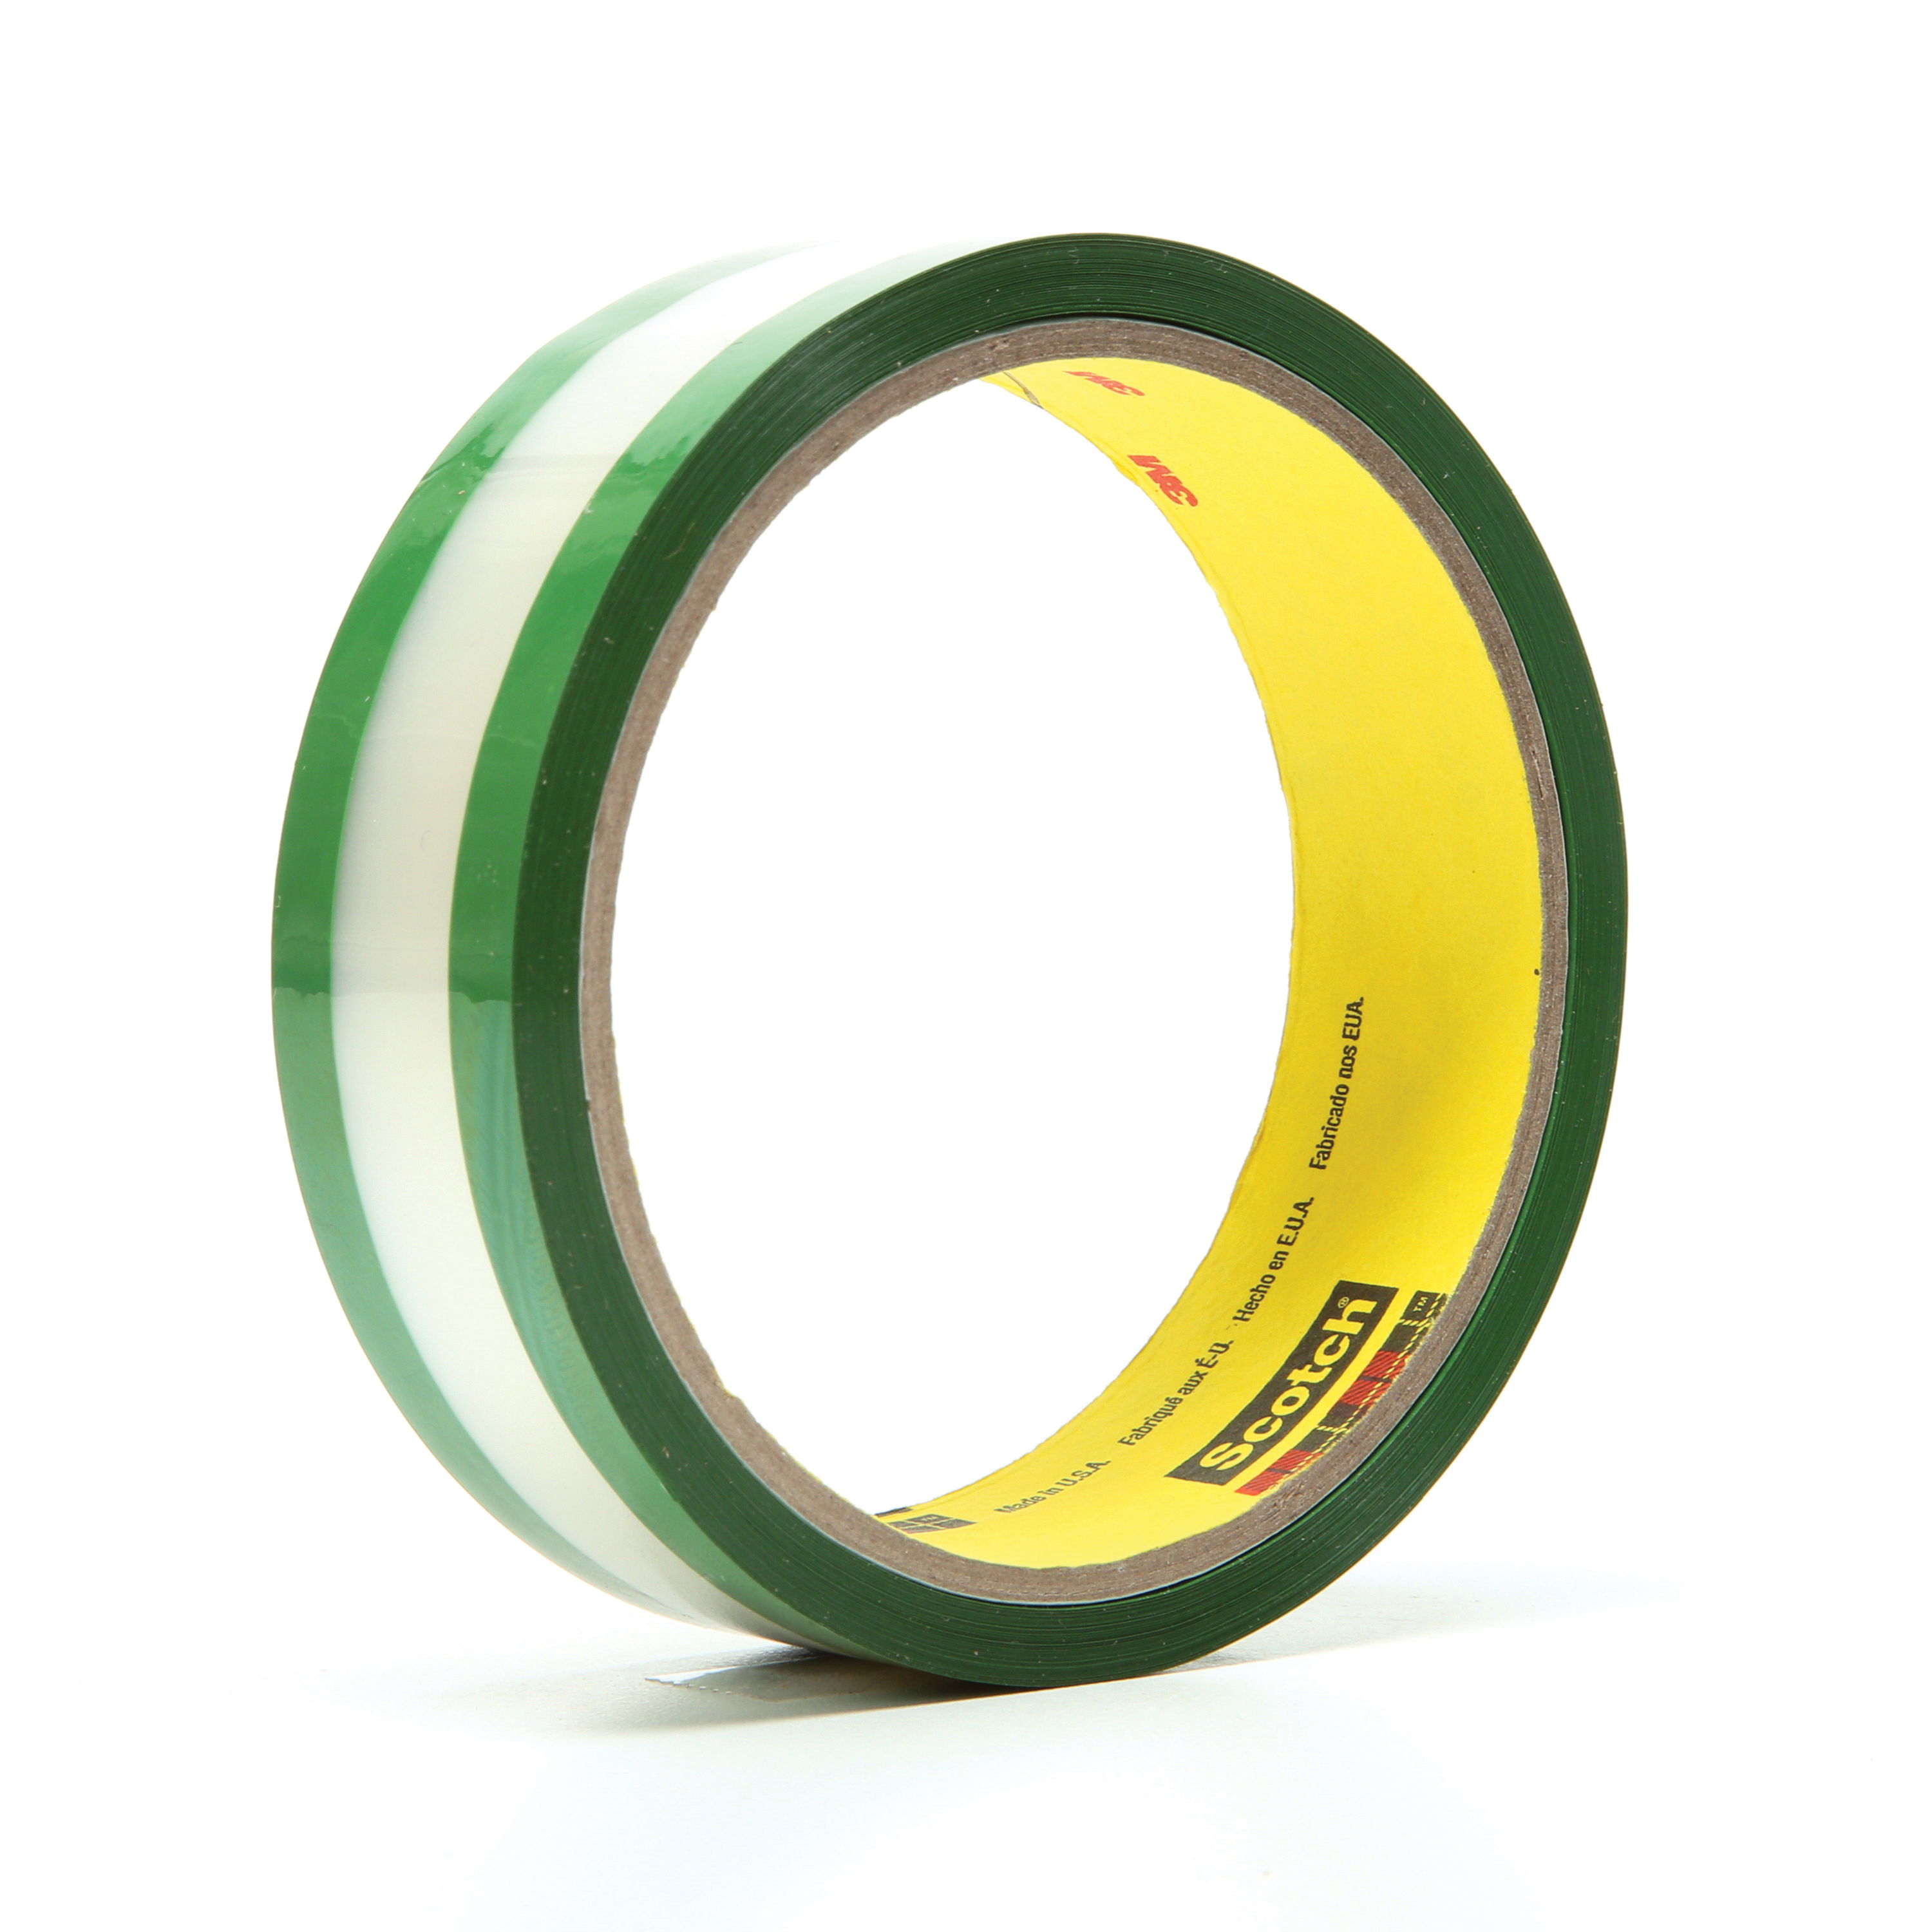 3M™ 021200-03508 Riveters Film Tape, 36 yd L x 1 in W, 1.7 mil THK, Rubber Adhesive, Transparent Polyester Backing, Green